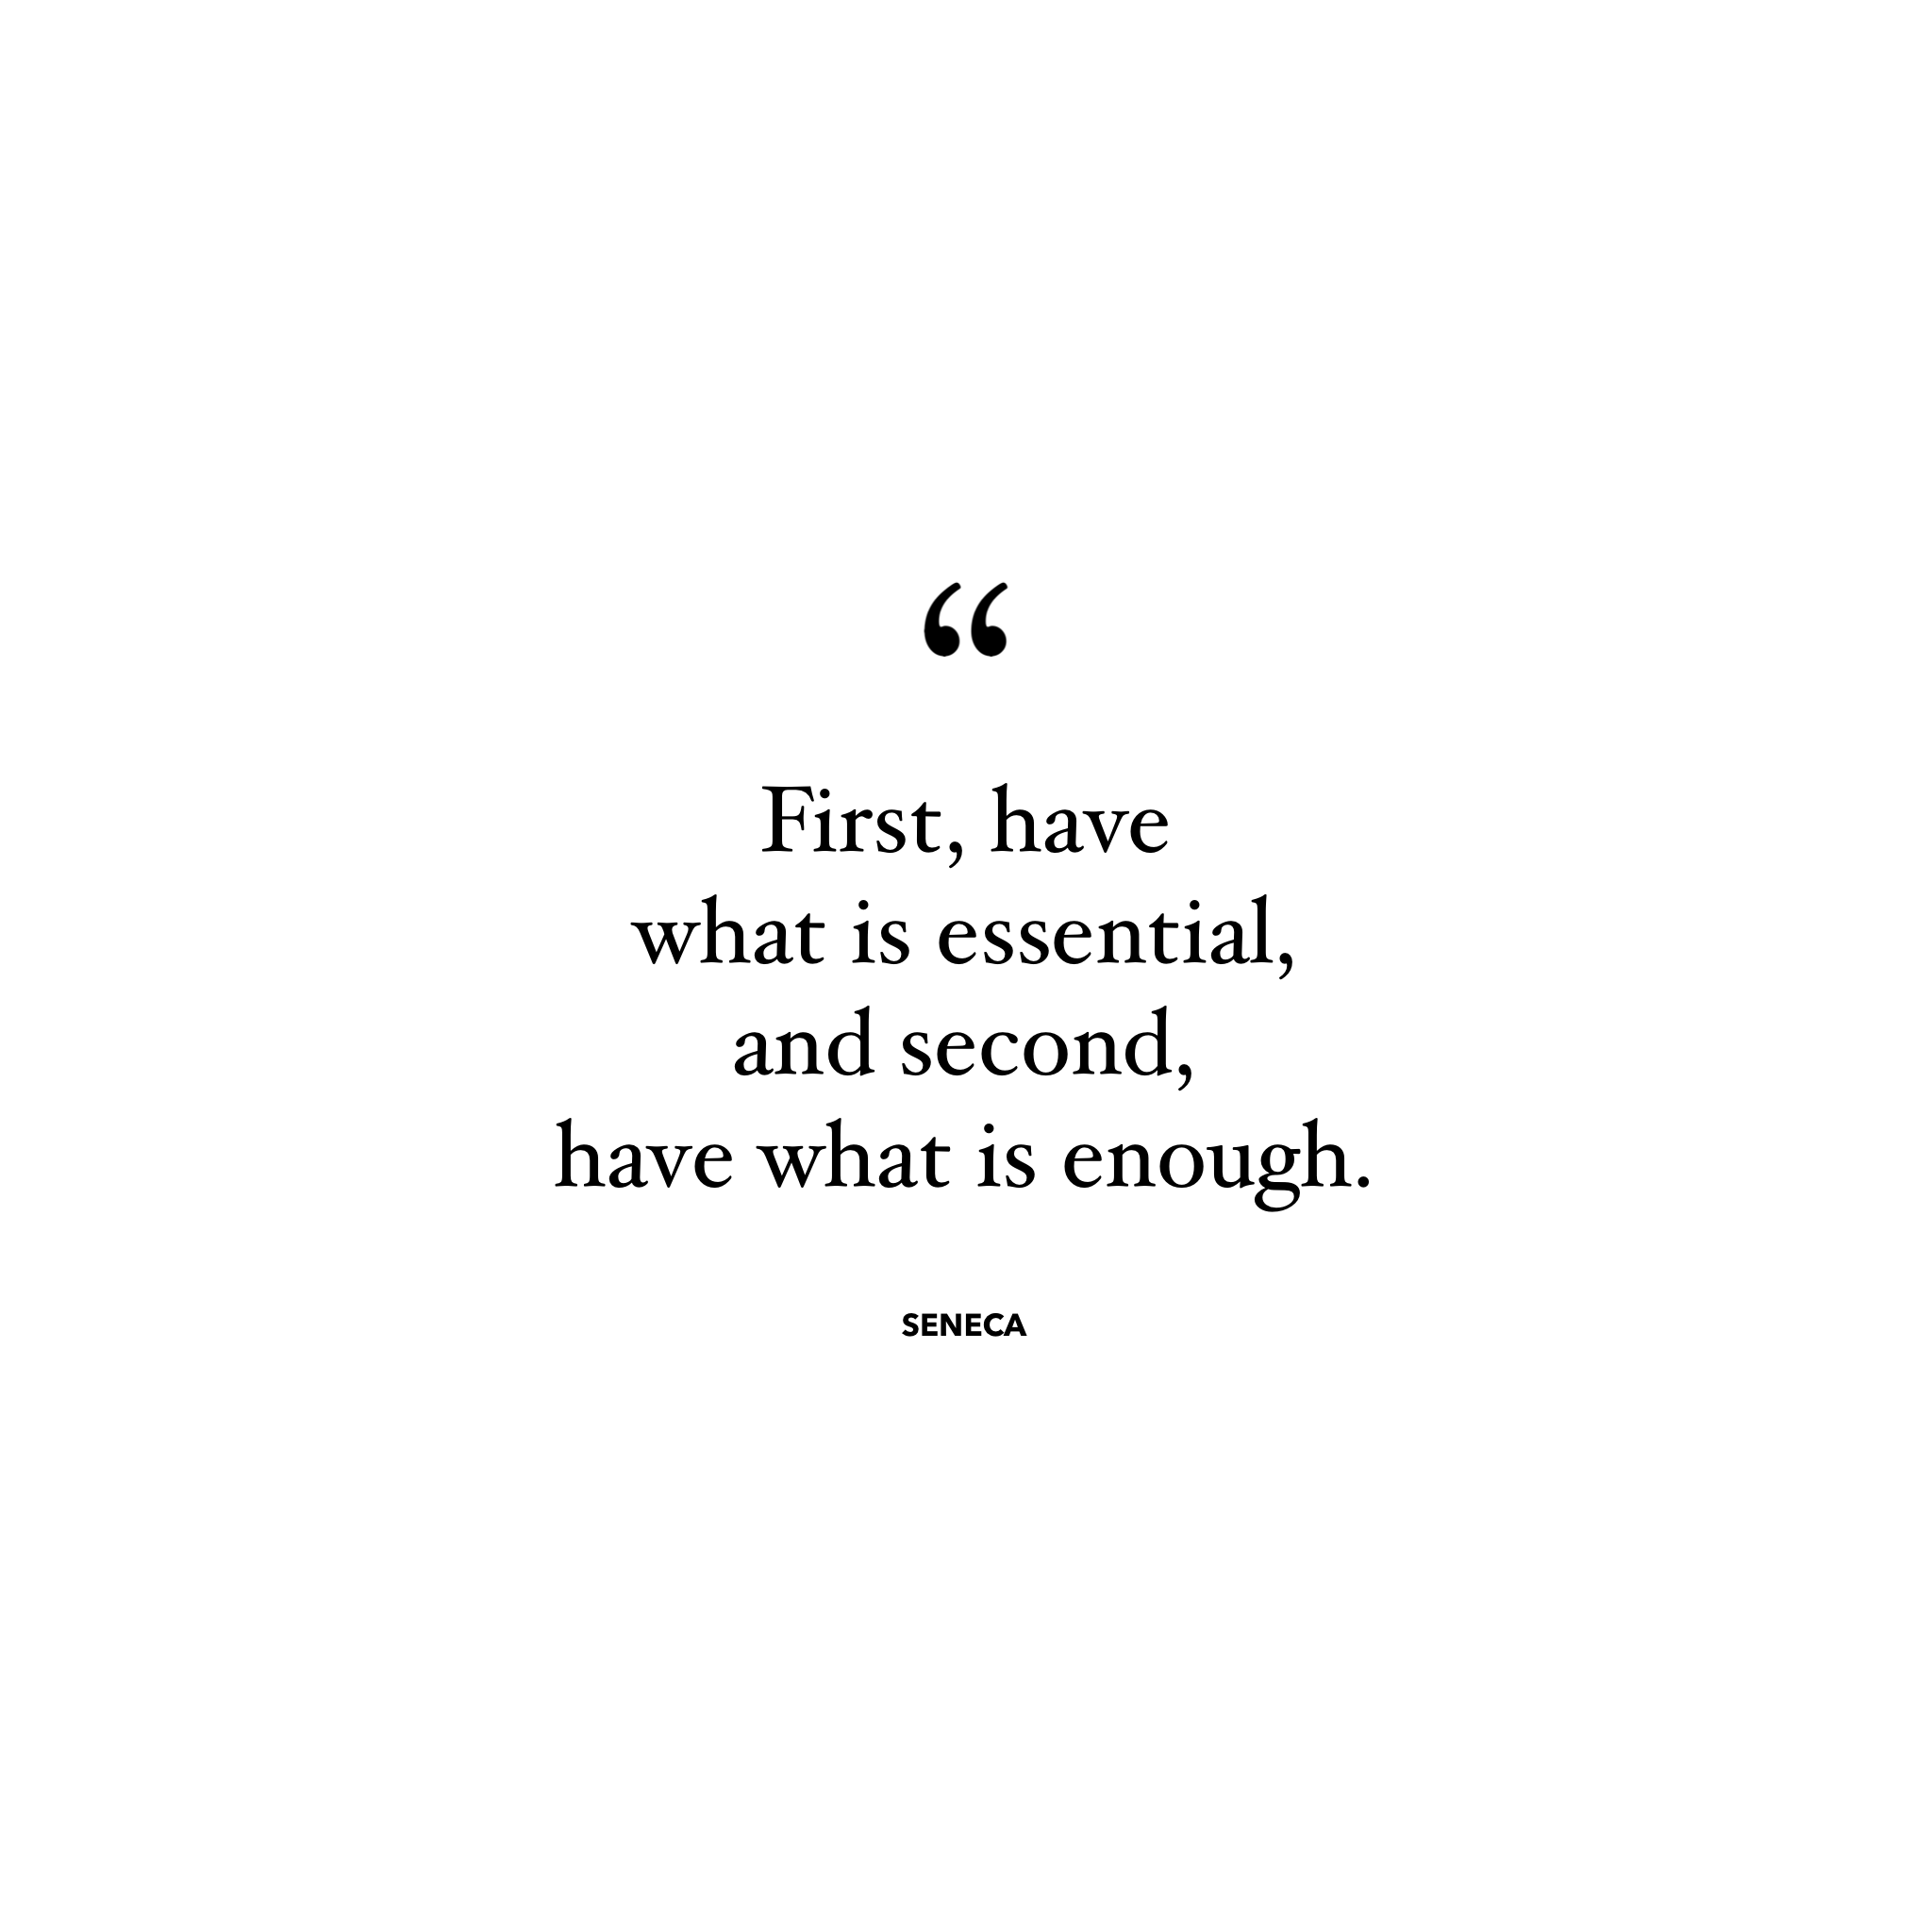 First, have what is essential, and second, have what is enough - Seneca